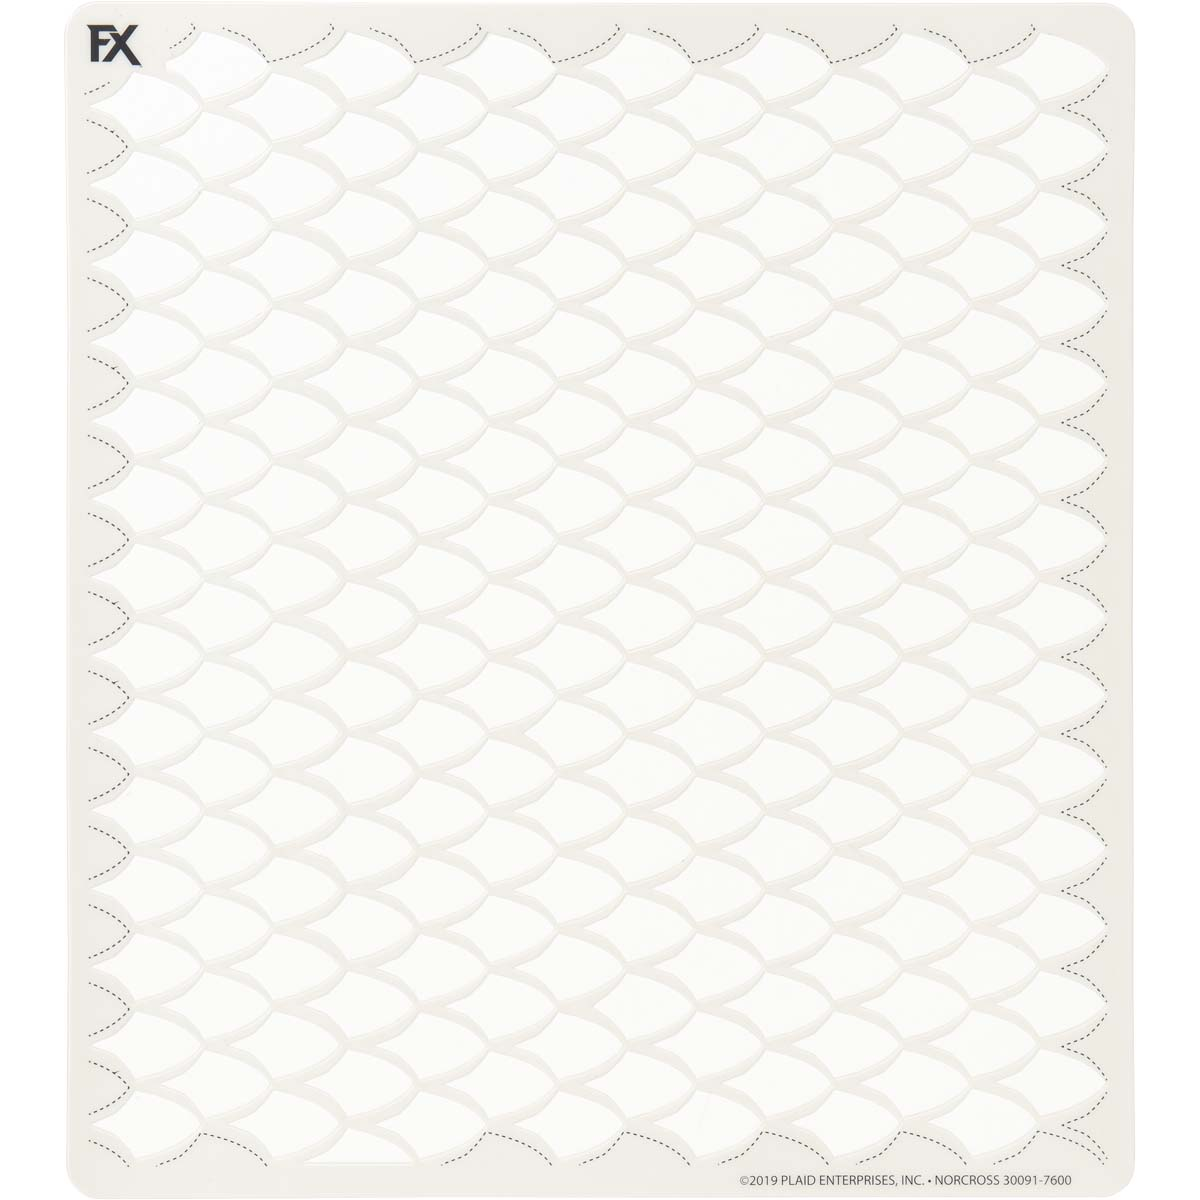 PlaidFX Template Set - Dragon, 8-1/2